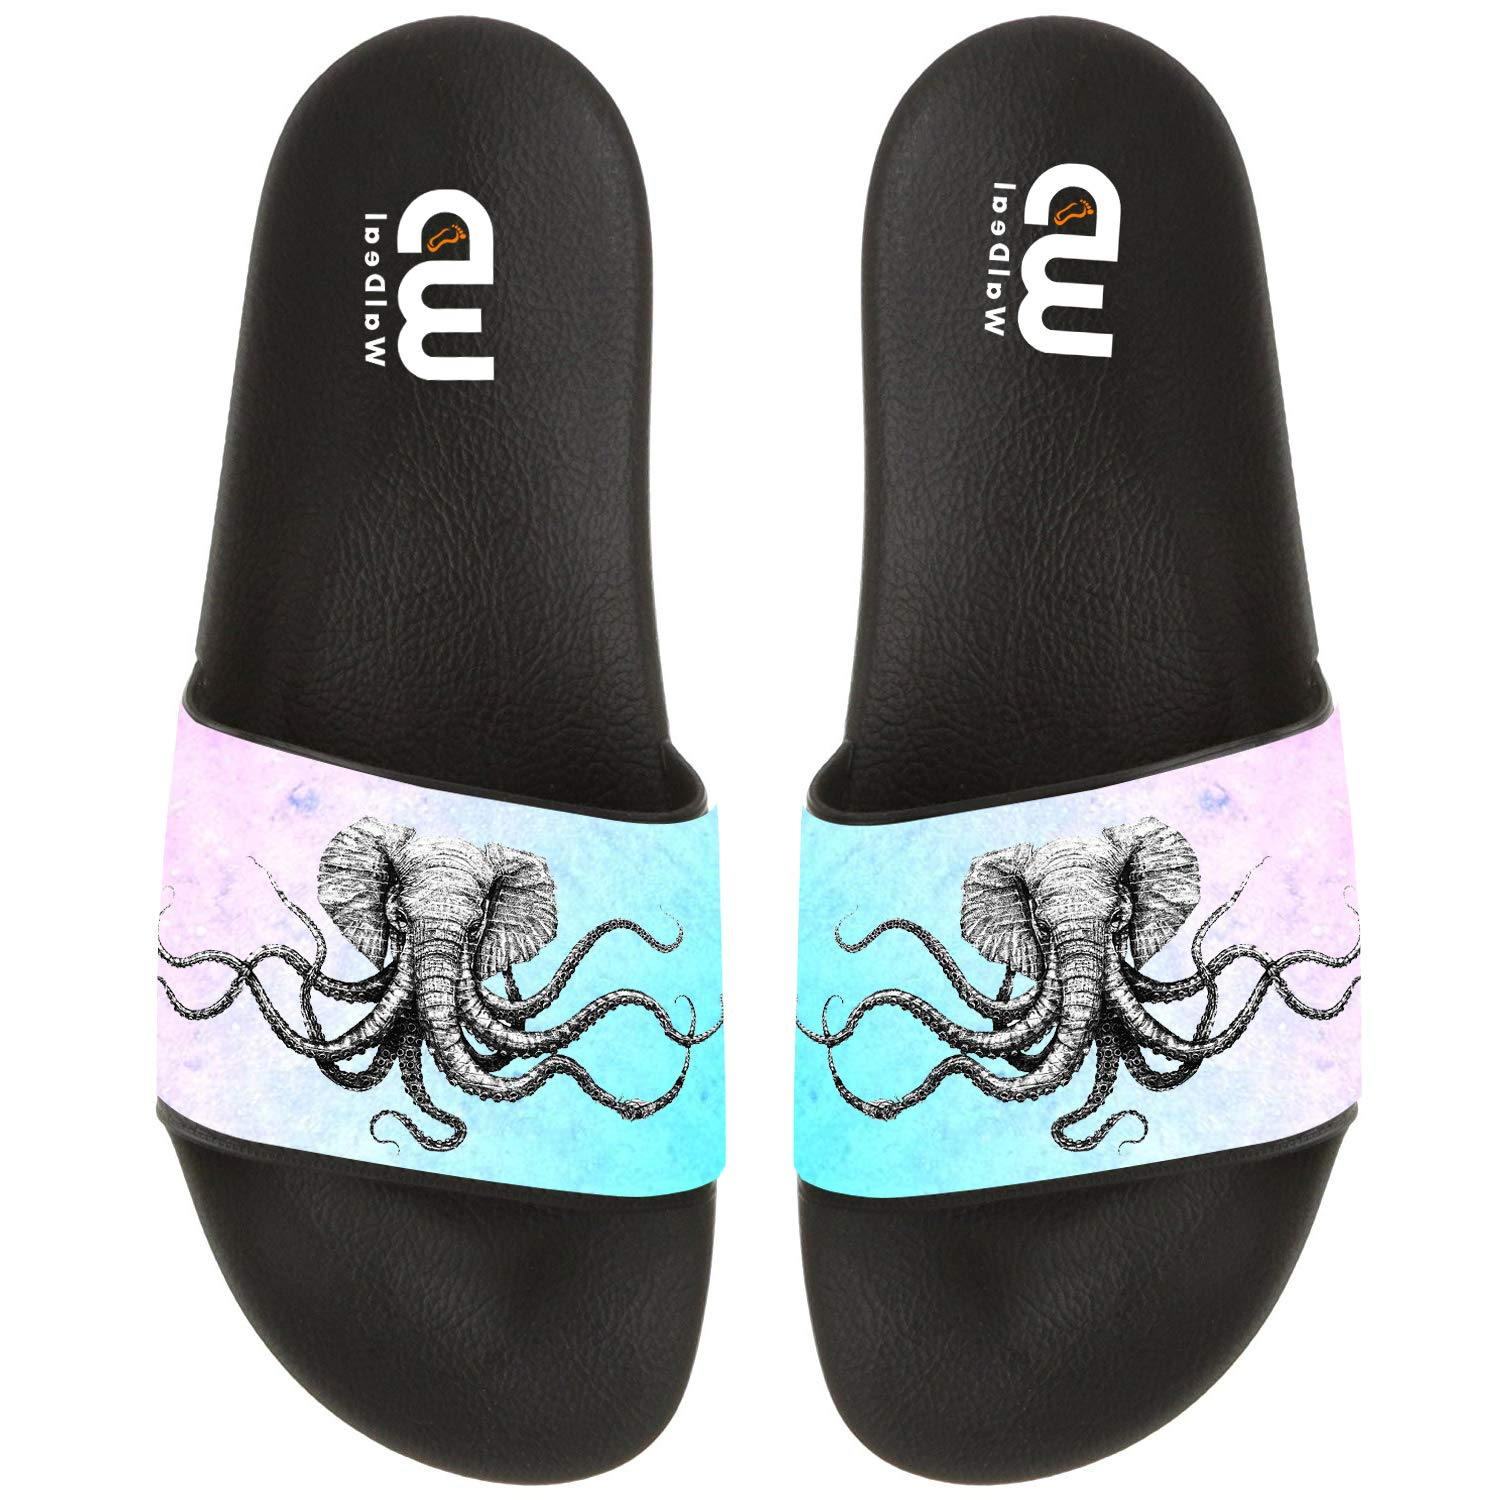 Funny Elephant Octopus Summer Slides Slippers For Boy Girl Indoor Outdoor Beach Sandal Shoes size 4